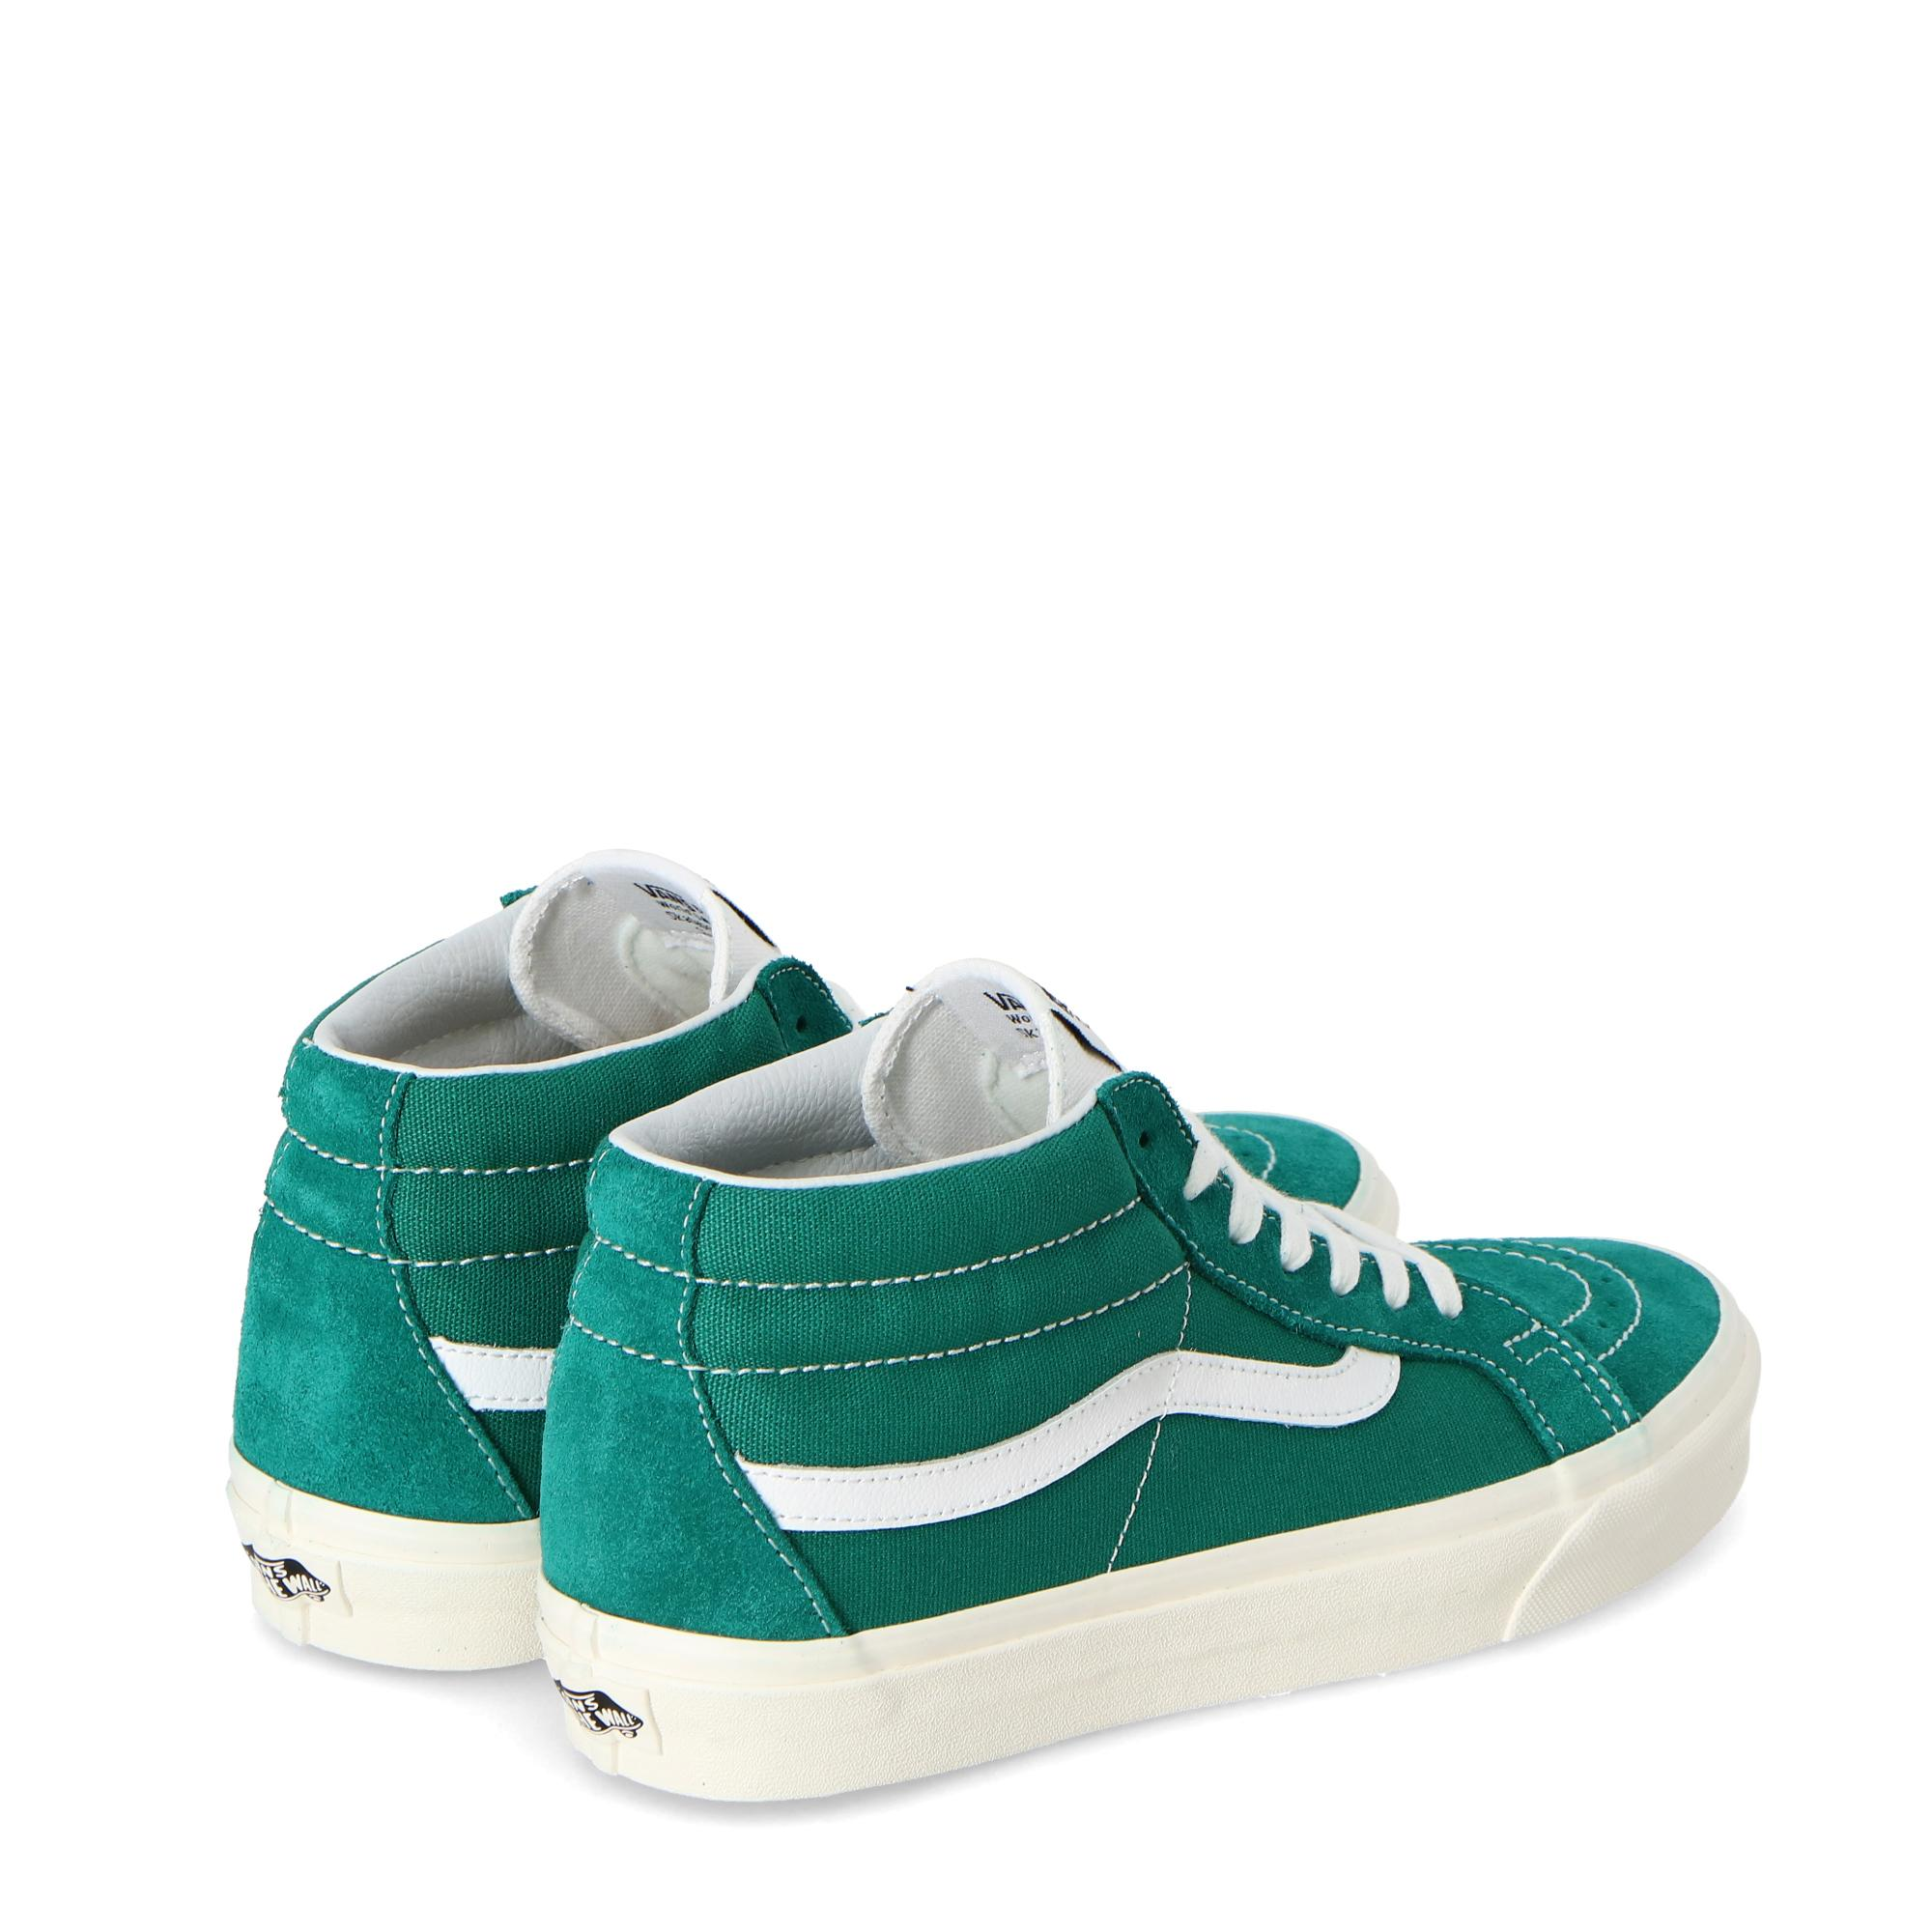 size 40 47a77 22143 VANS SK-8 MID REISSUE